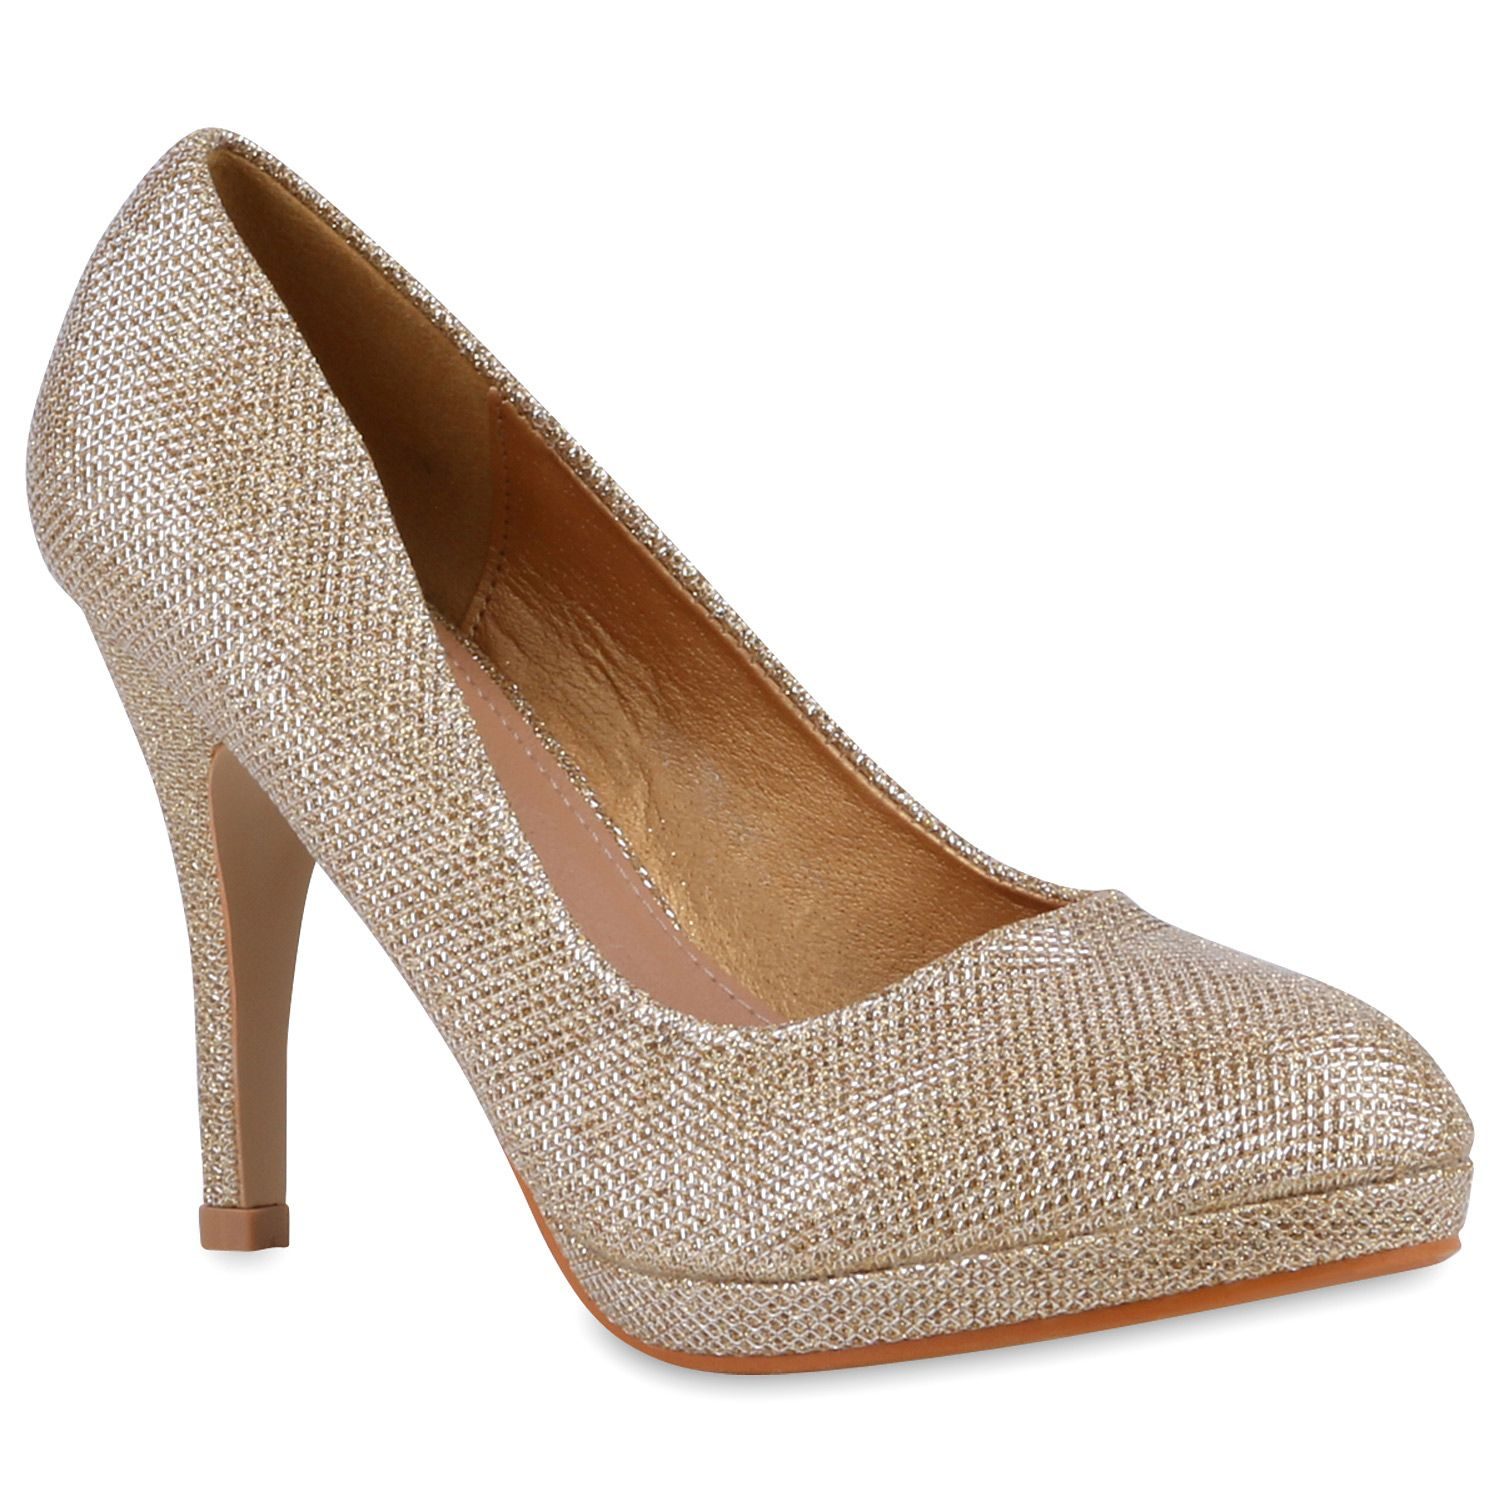 9328505f1ef9 Damen Pumps Klassische Pumps Gold  pumps  damenschuhe  fashion ...